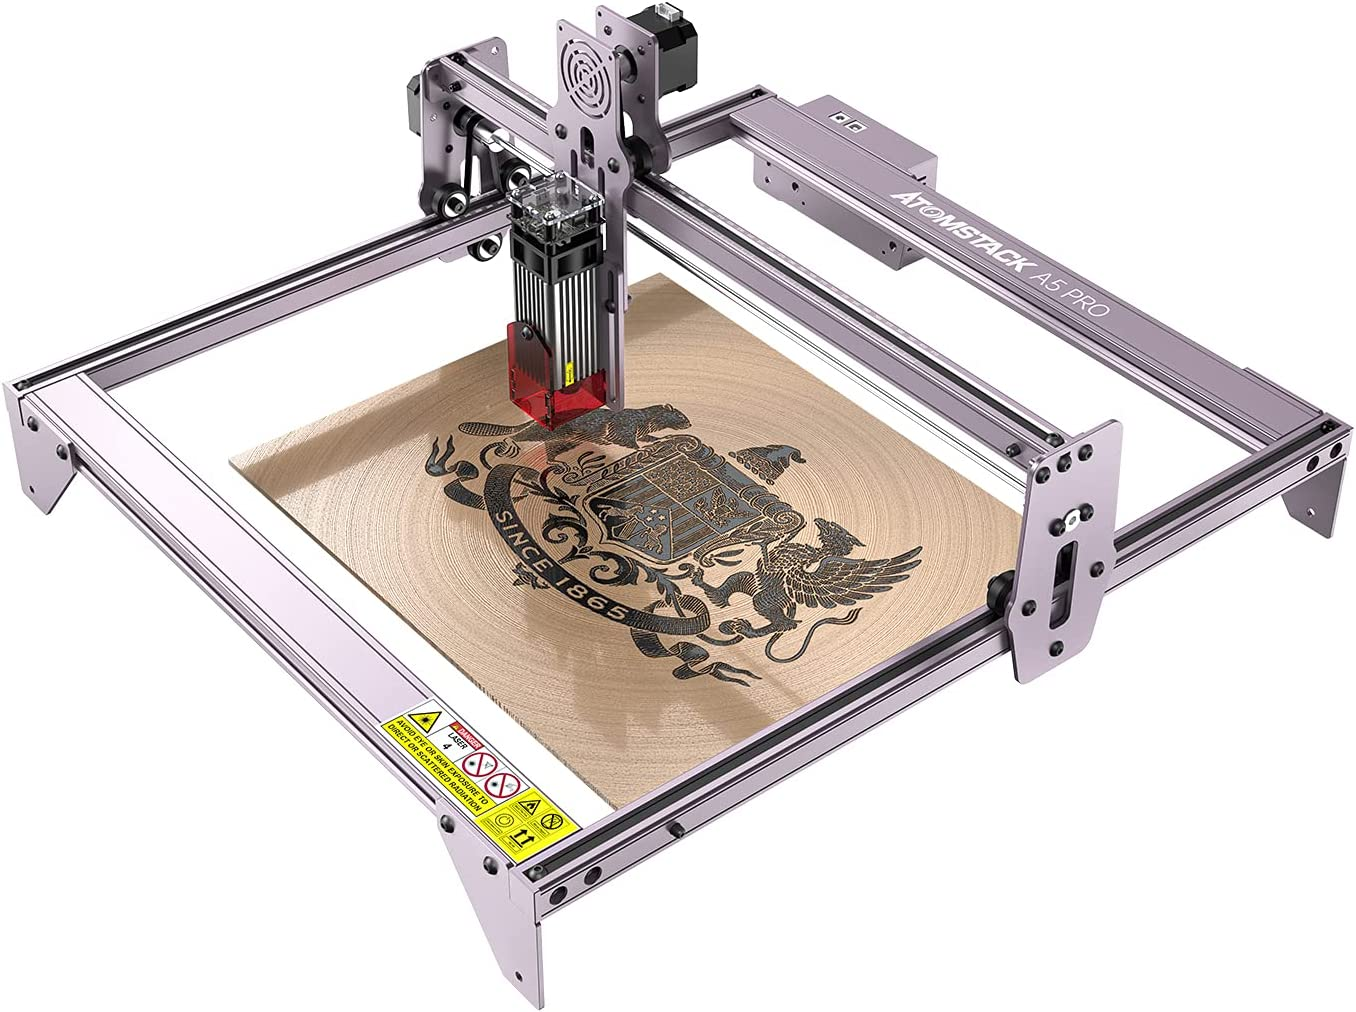 Laser Engraver ATOMSTACK A5 Pro Cheap mail order sales 2021 spring and summer new Master 40W Eye Protectio